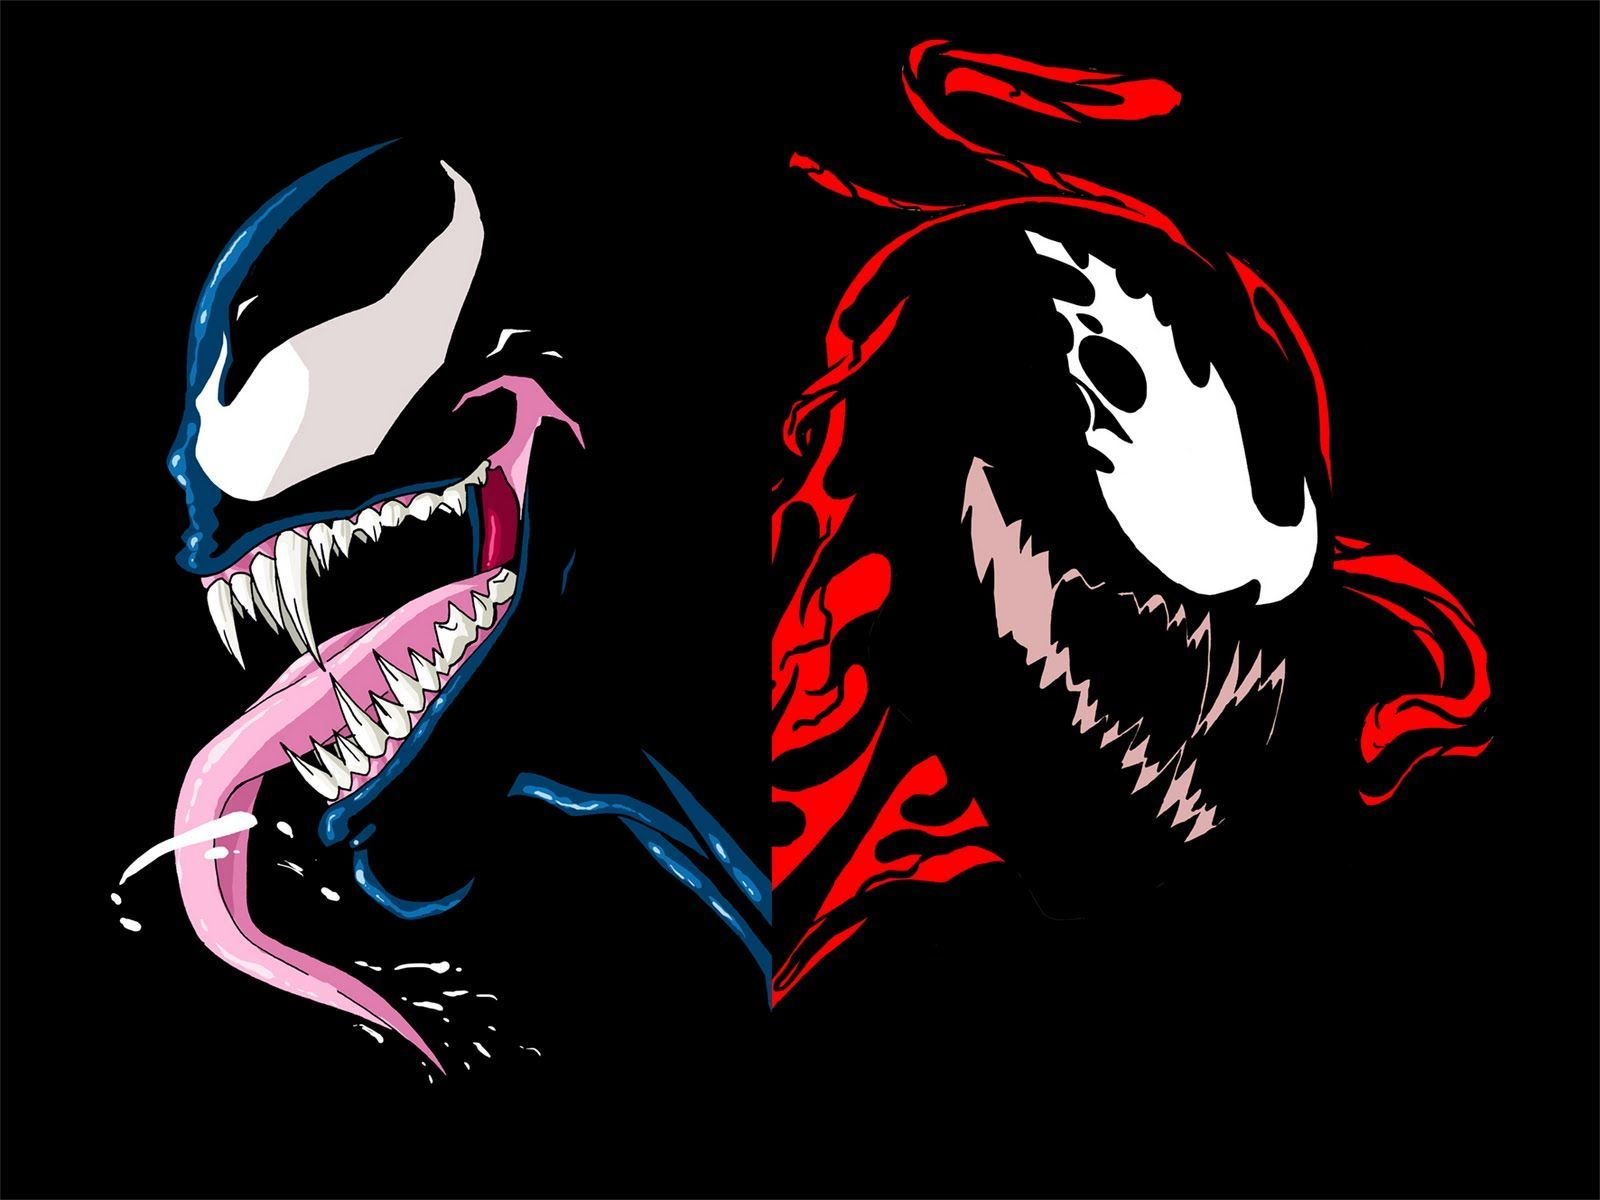 Carnage Wallpapers HD Desktop Backgrounds Images and Pictures 1600x1200